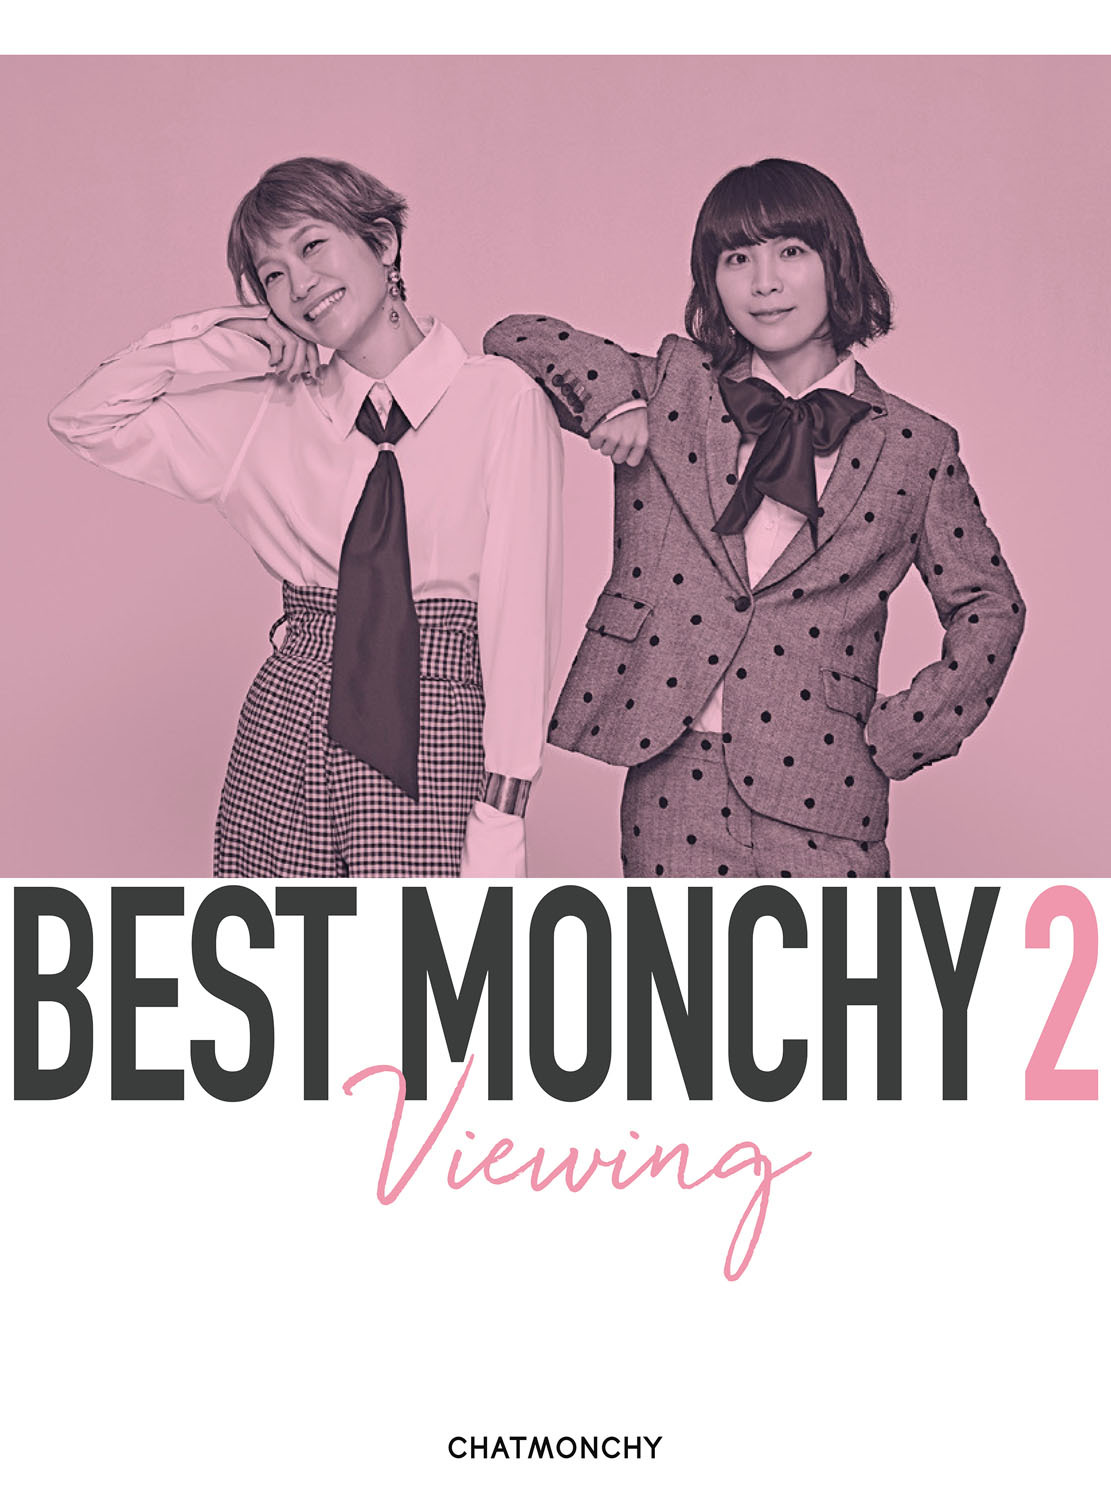 『BEST MONCHY 2 -Viewing-』